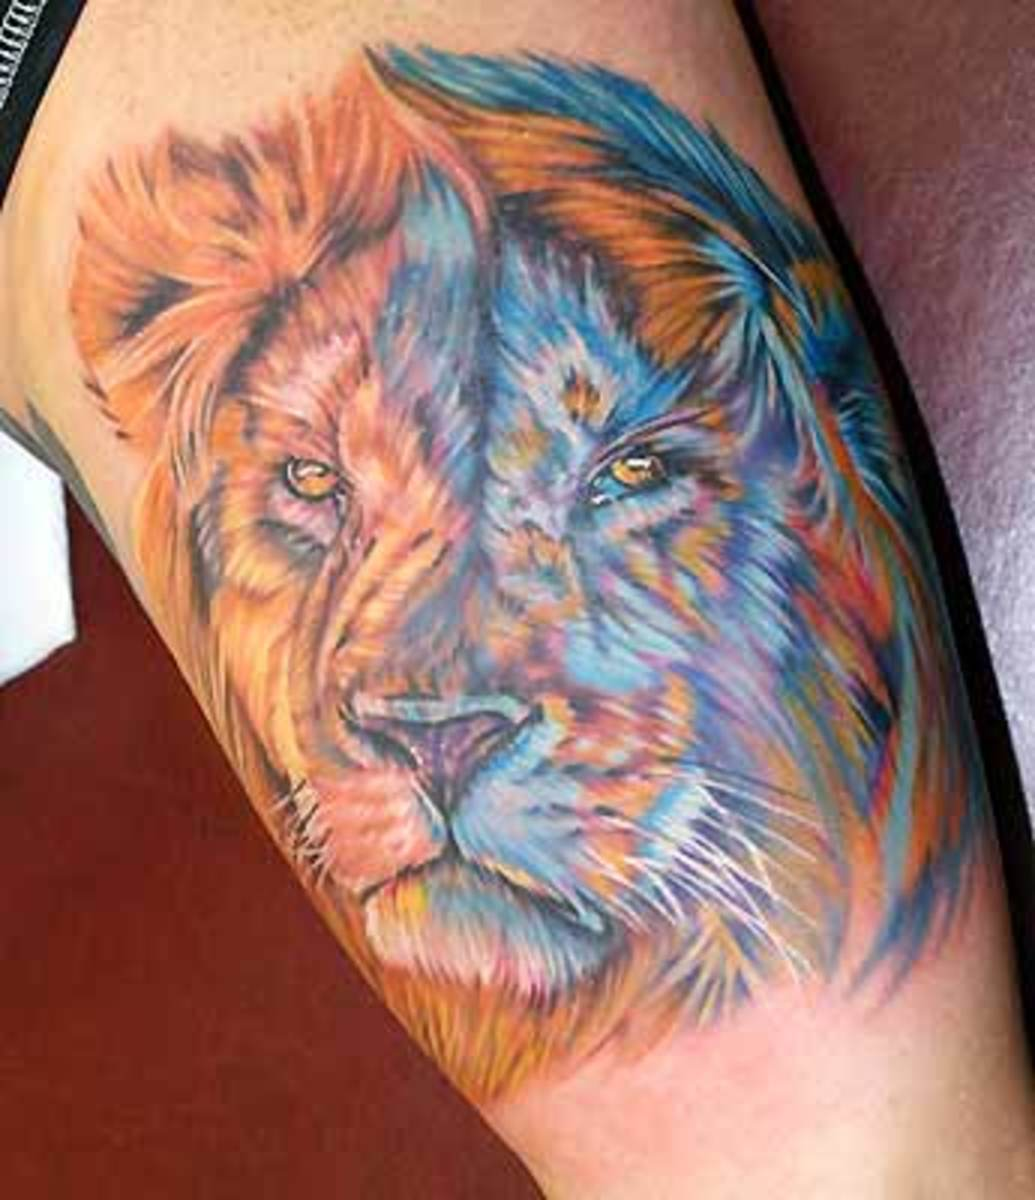 The addition of the blue adds interest to this tattoo.  The artist captured the wildness and magnificence of lions well.